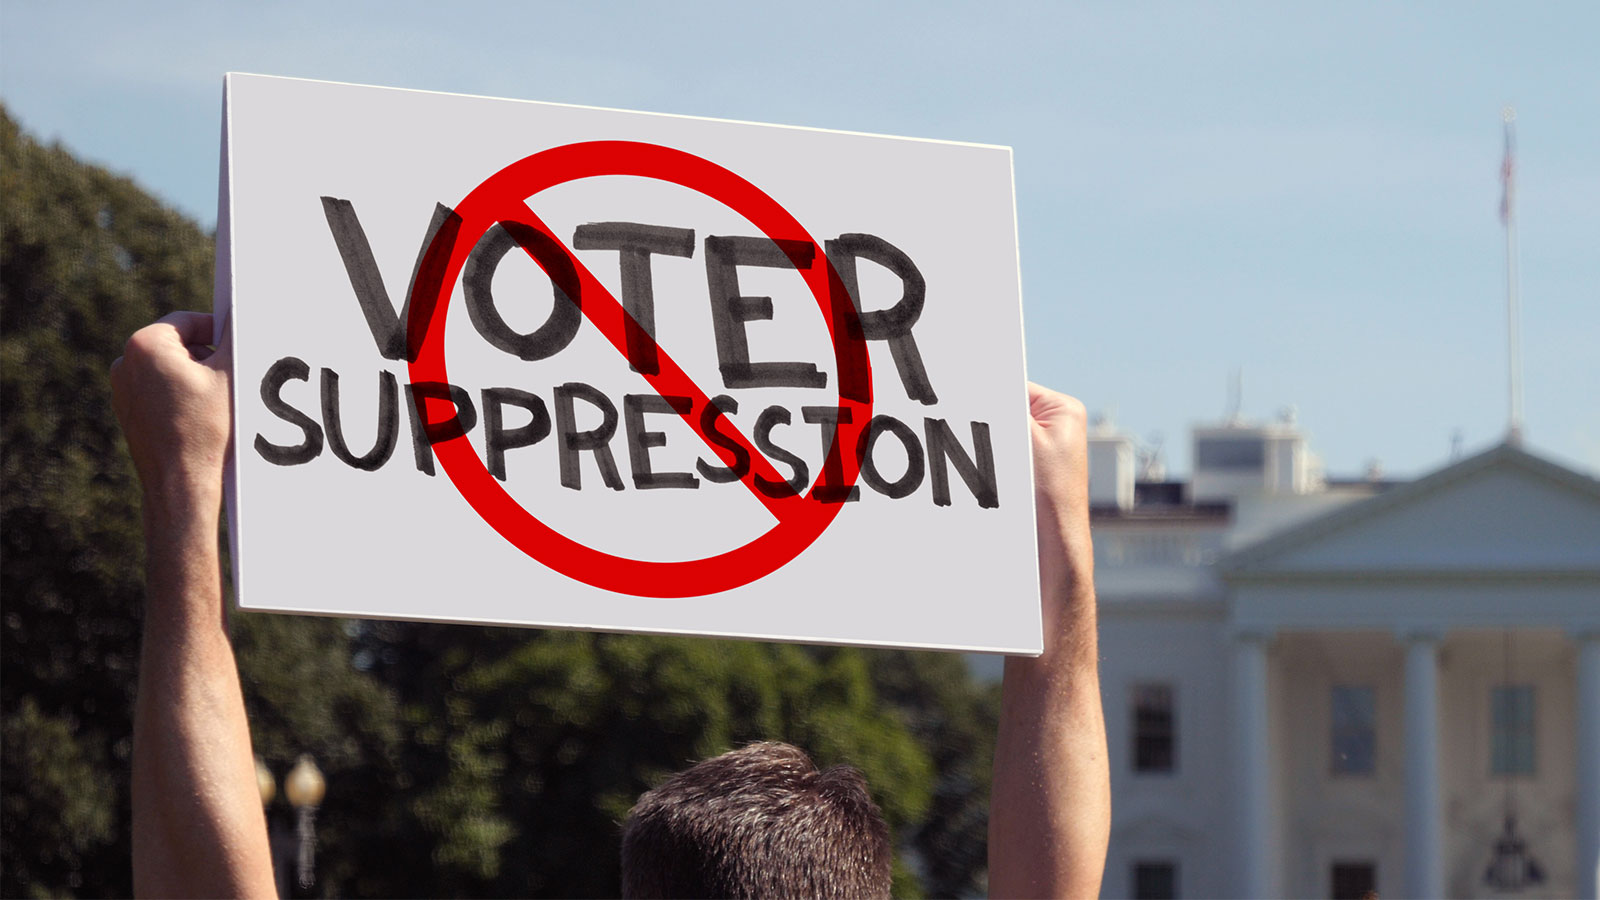 Open Letter to Protect Against Voter Suppression